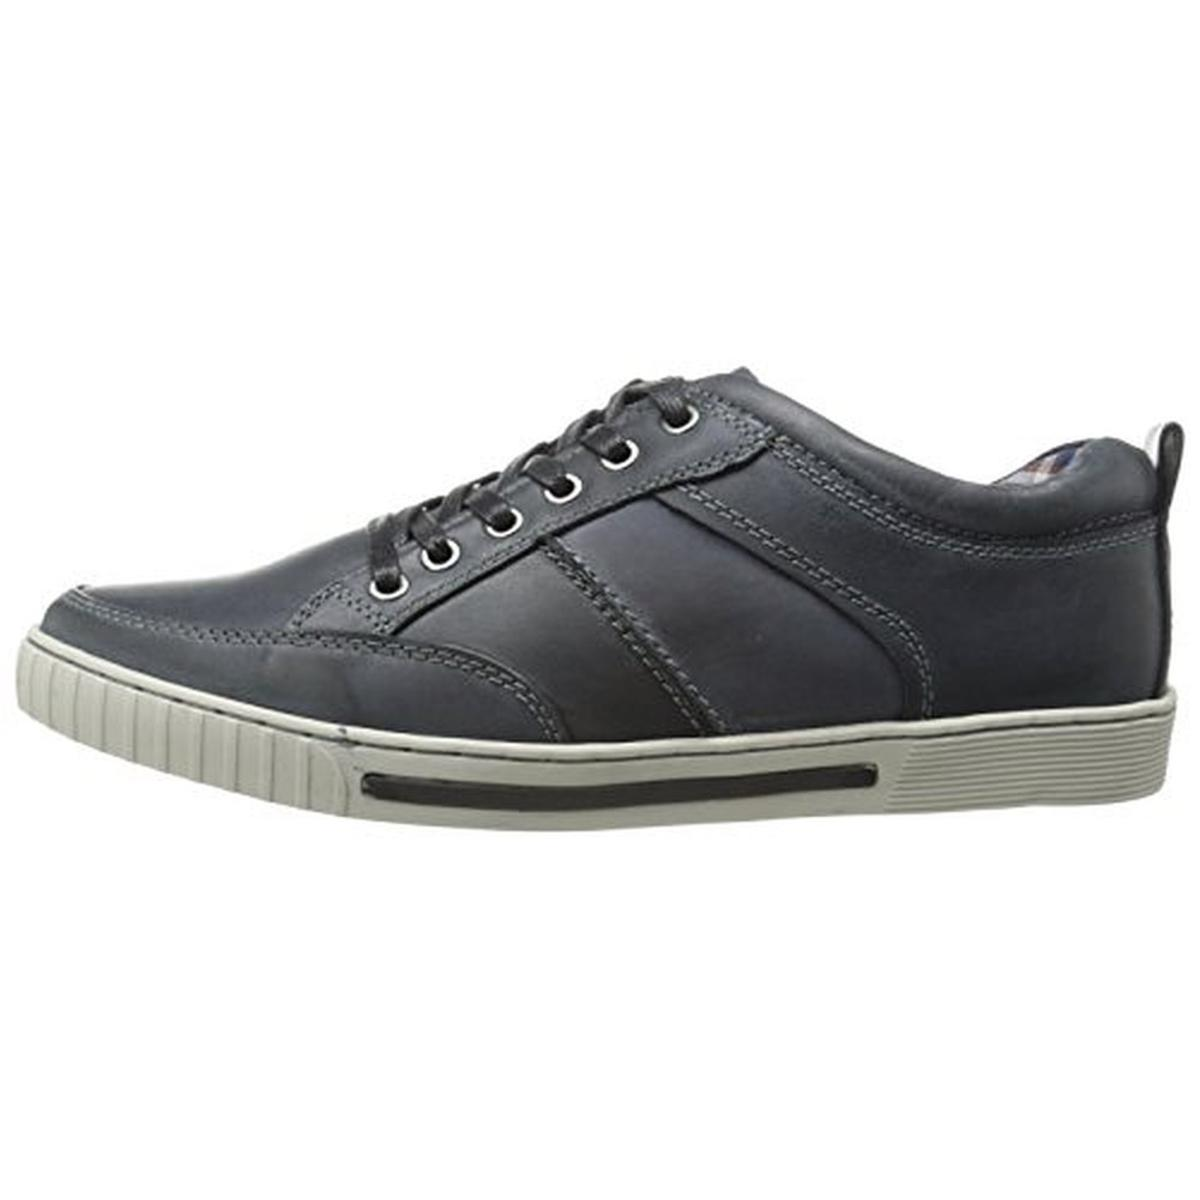 5d180639ff6 Steve Madden Pipeur Men s Leather Classic Casual Fashion Sneakers ...